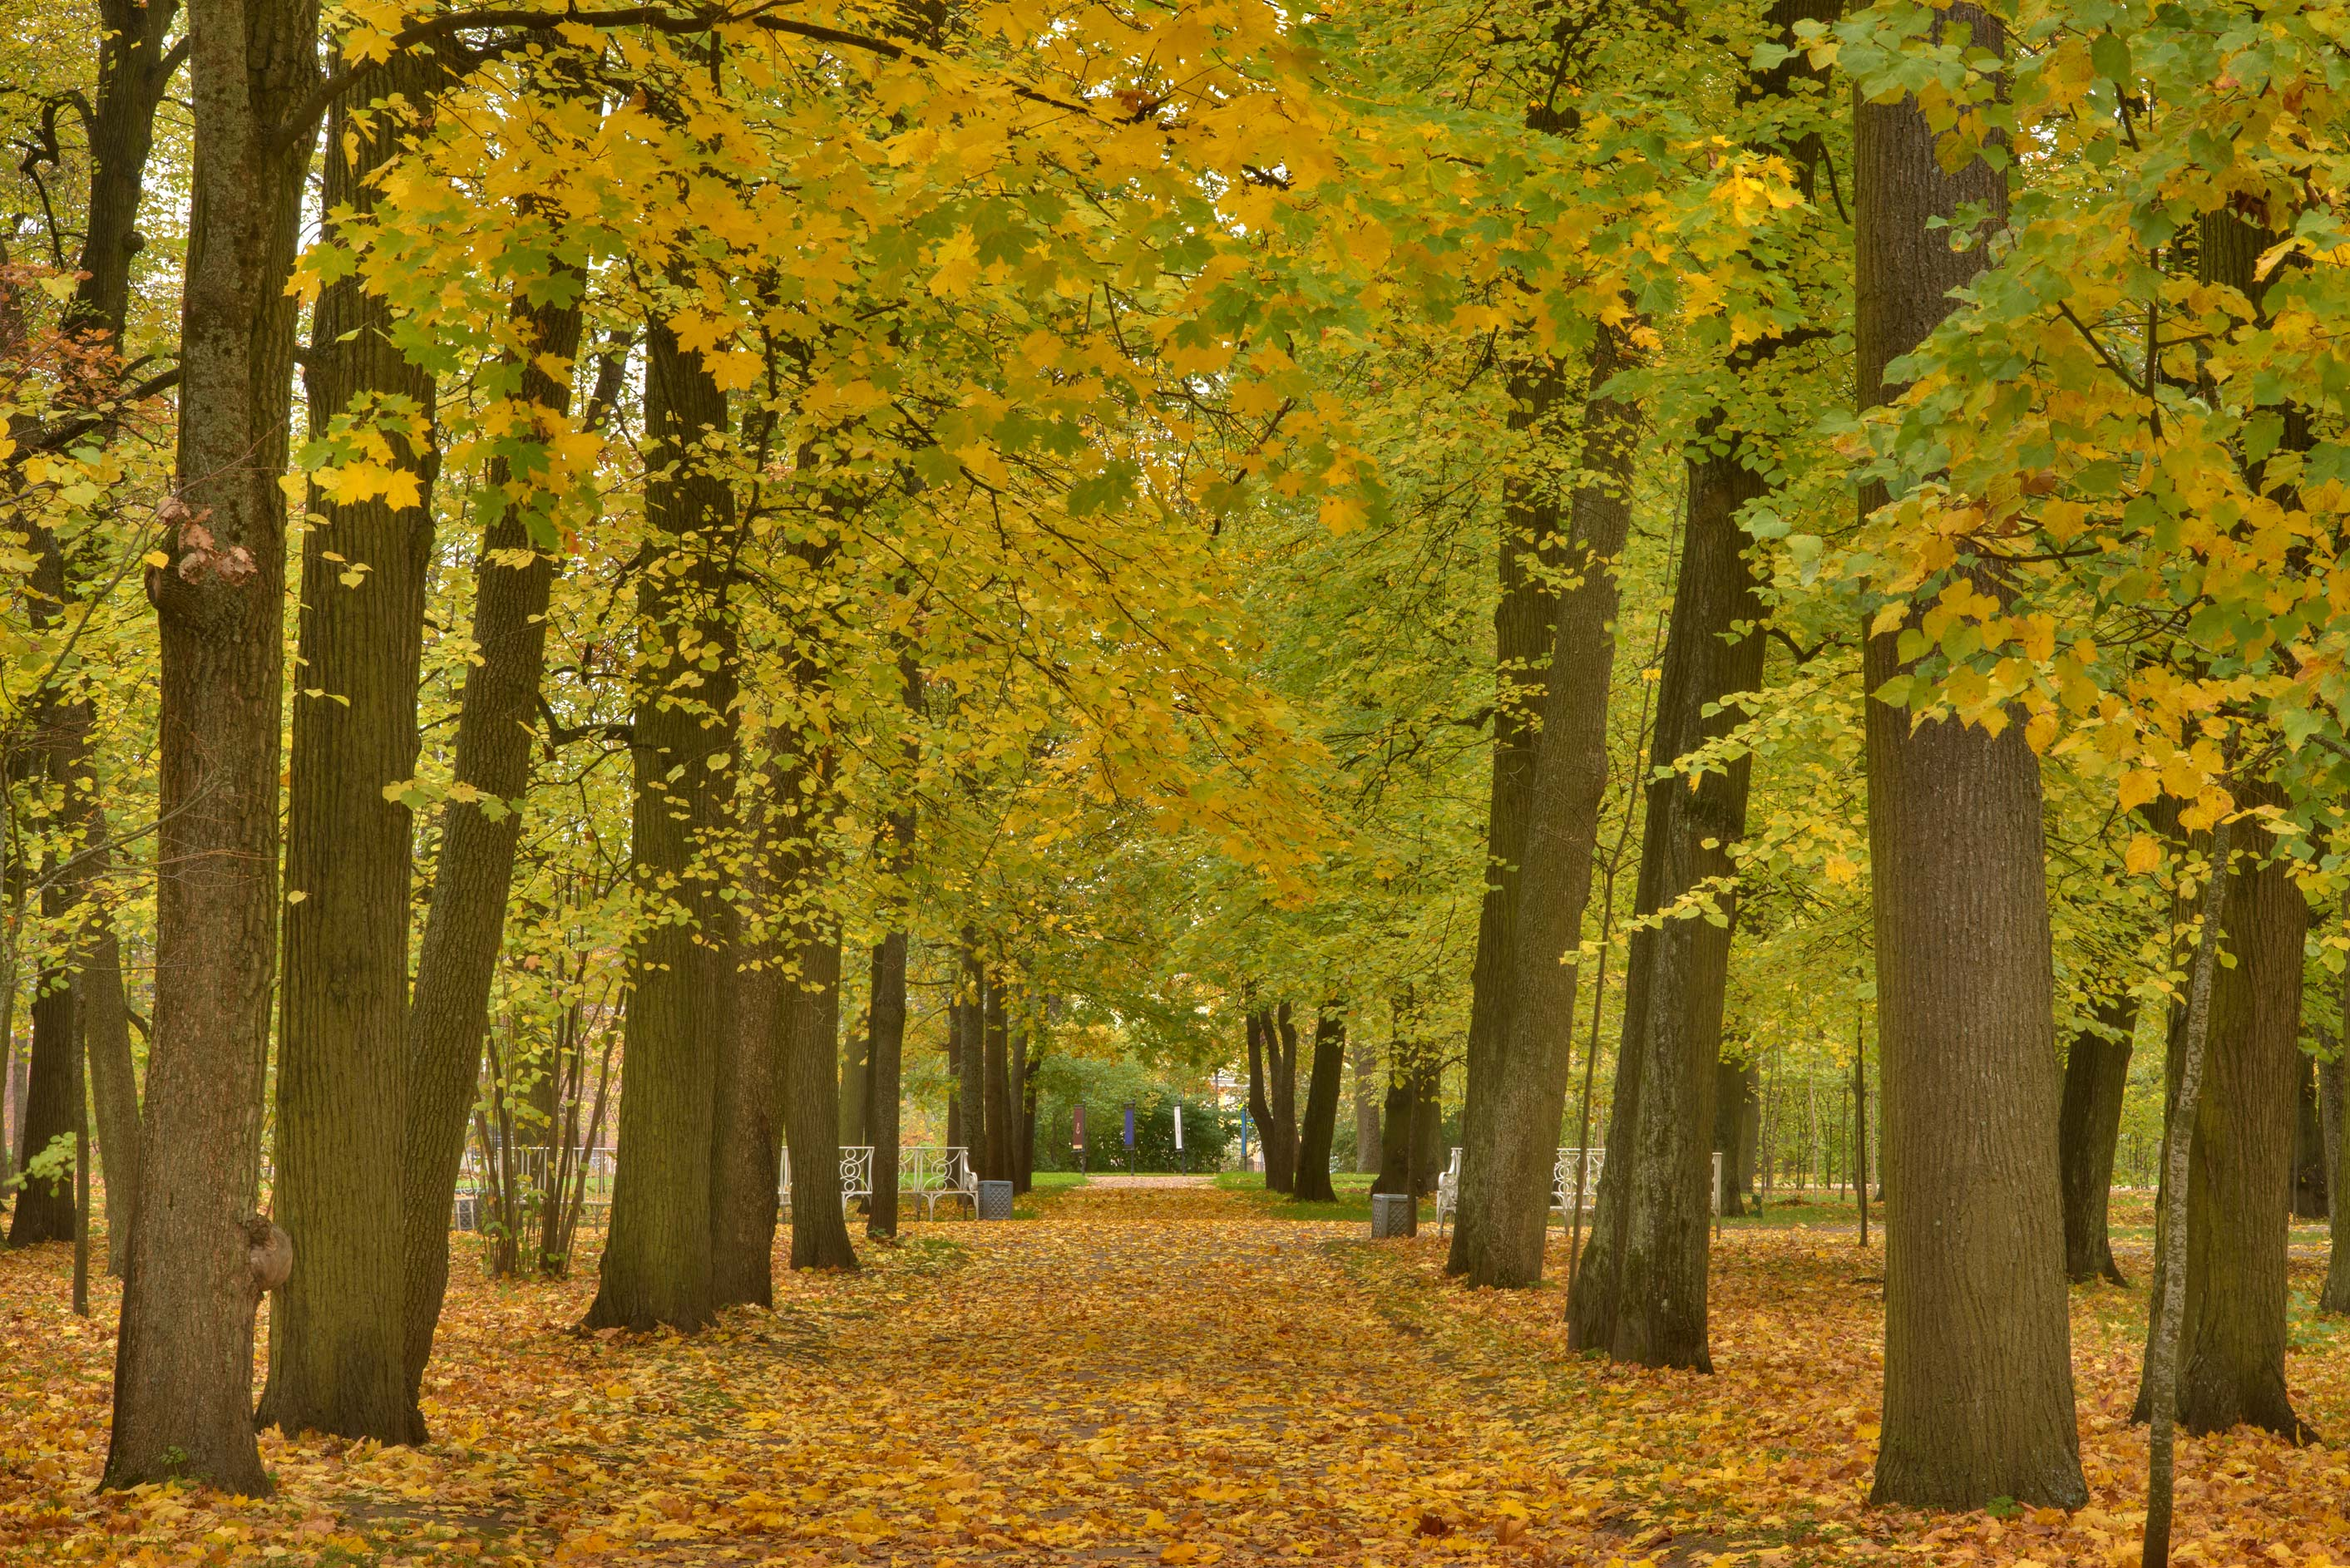 Linden alley in Catherine Park. Pushkin (former Tsarskoe Selo) near St.Petersburg, Russia